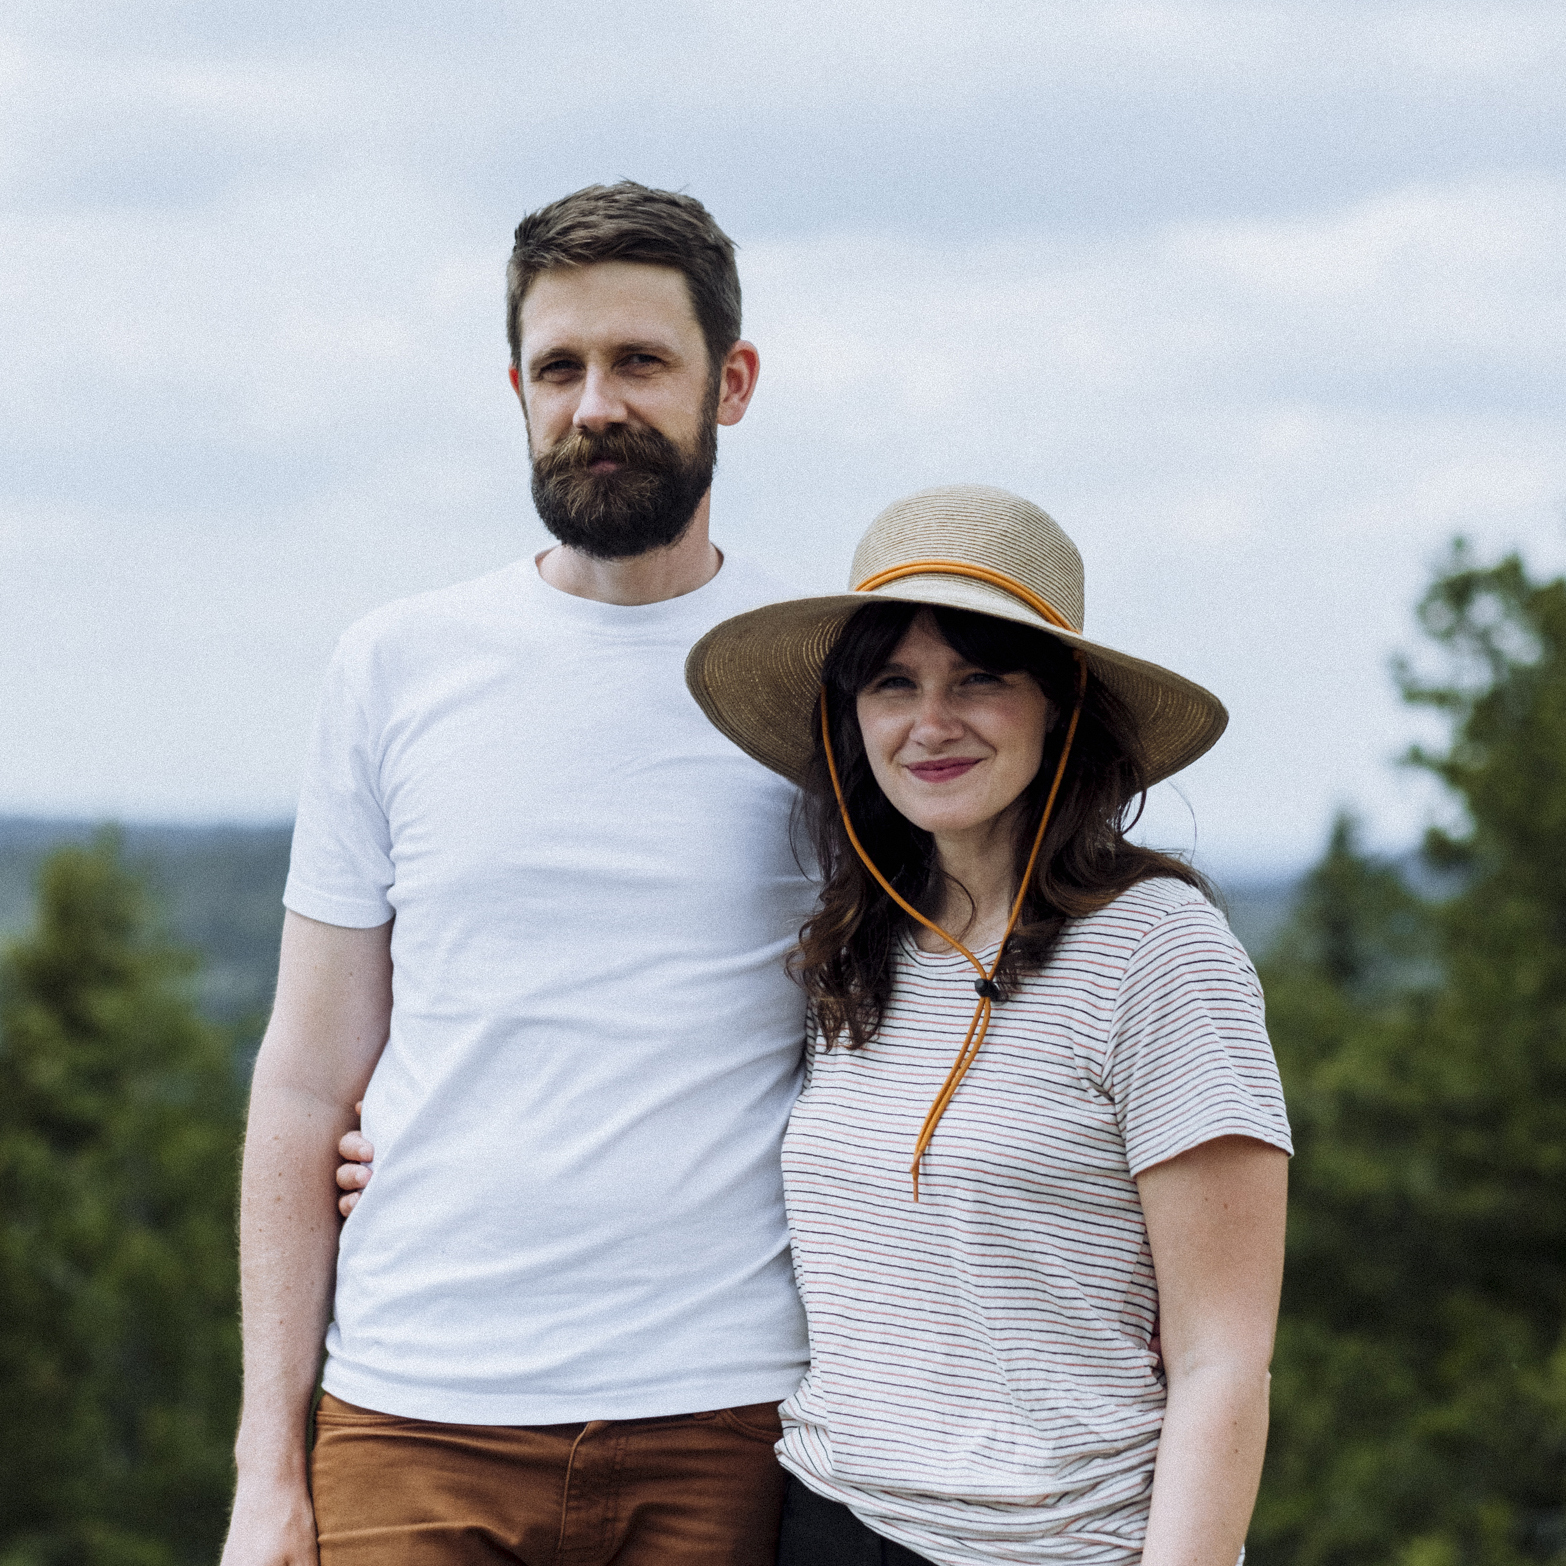 ABOUT THE AUTHORS - Megan McLellan & Emanuel Smedbol are photographers from Vancouver, BC. Driven by a passion for sharing local trips & trails, they started the adventure blog Field and Forest. When they aren't out hiking & camping you can usually find them strolling around the neighbourhood daydreaming about hiking and camping. W: fieldandforest.co IG: @fieldandforest